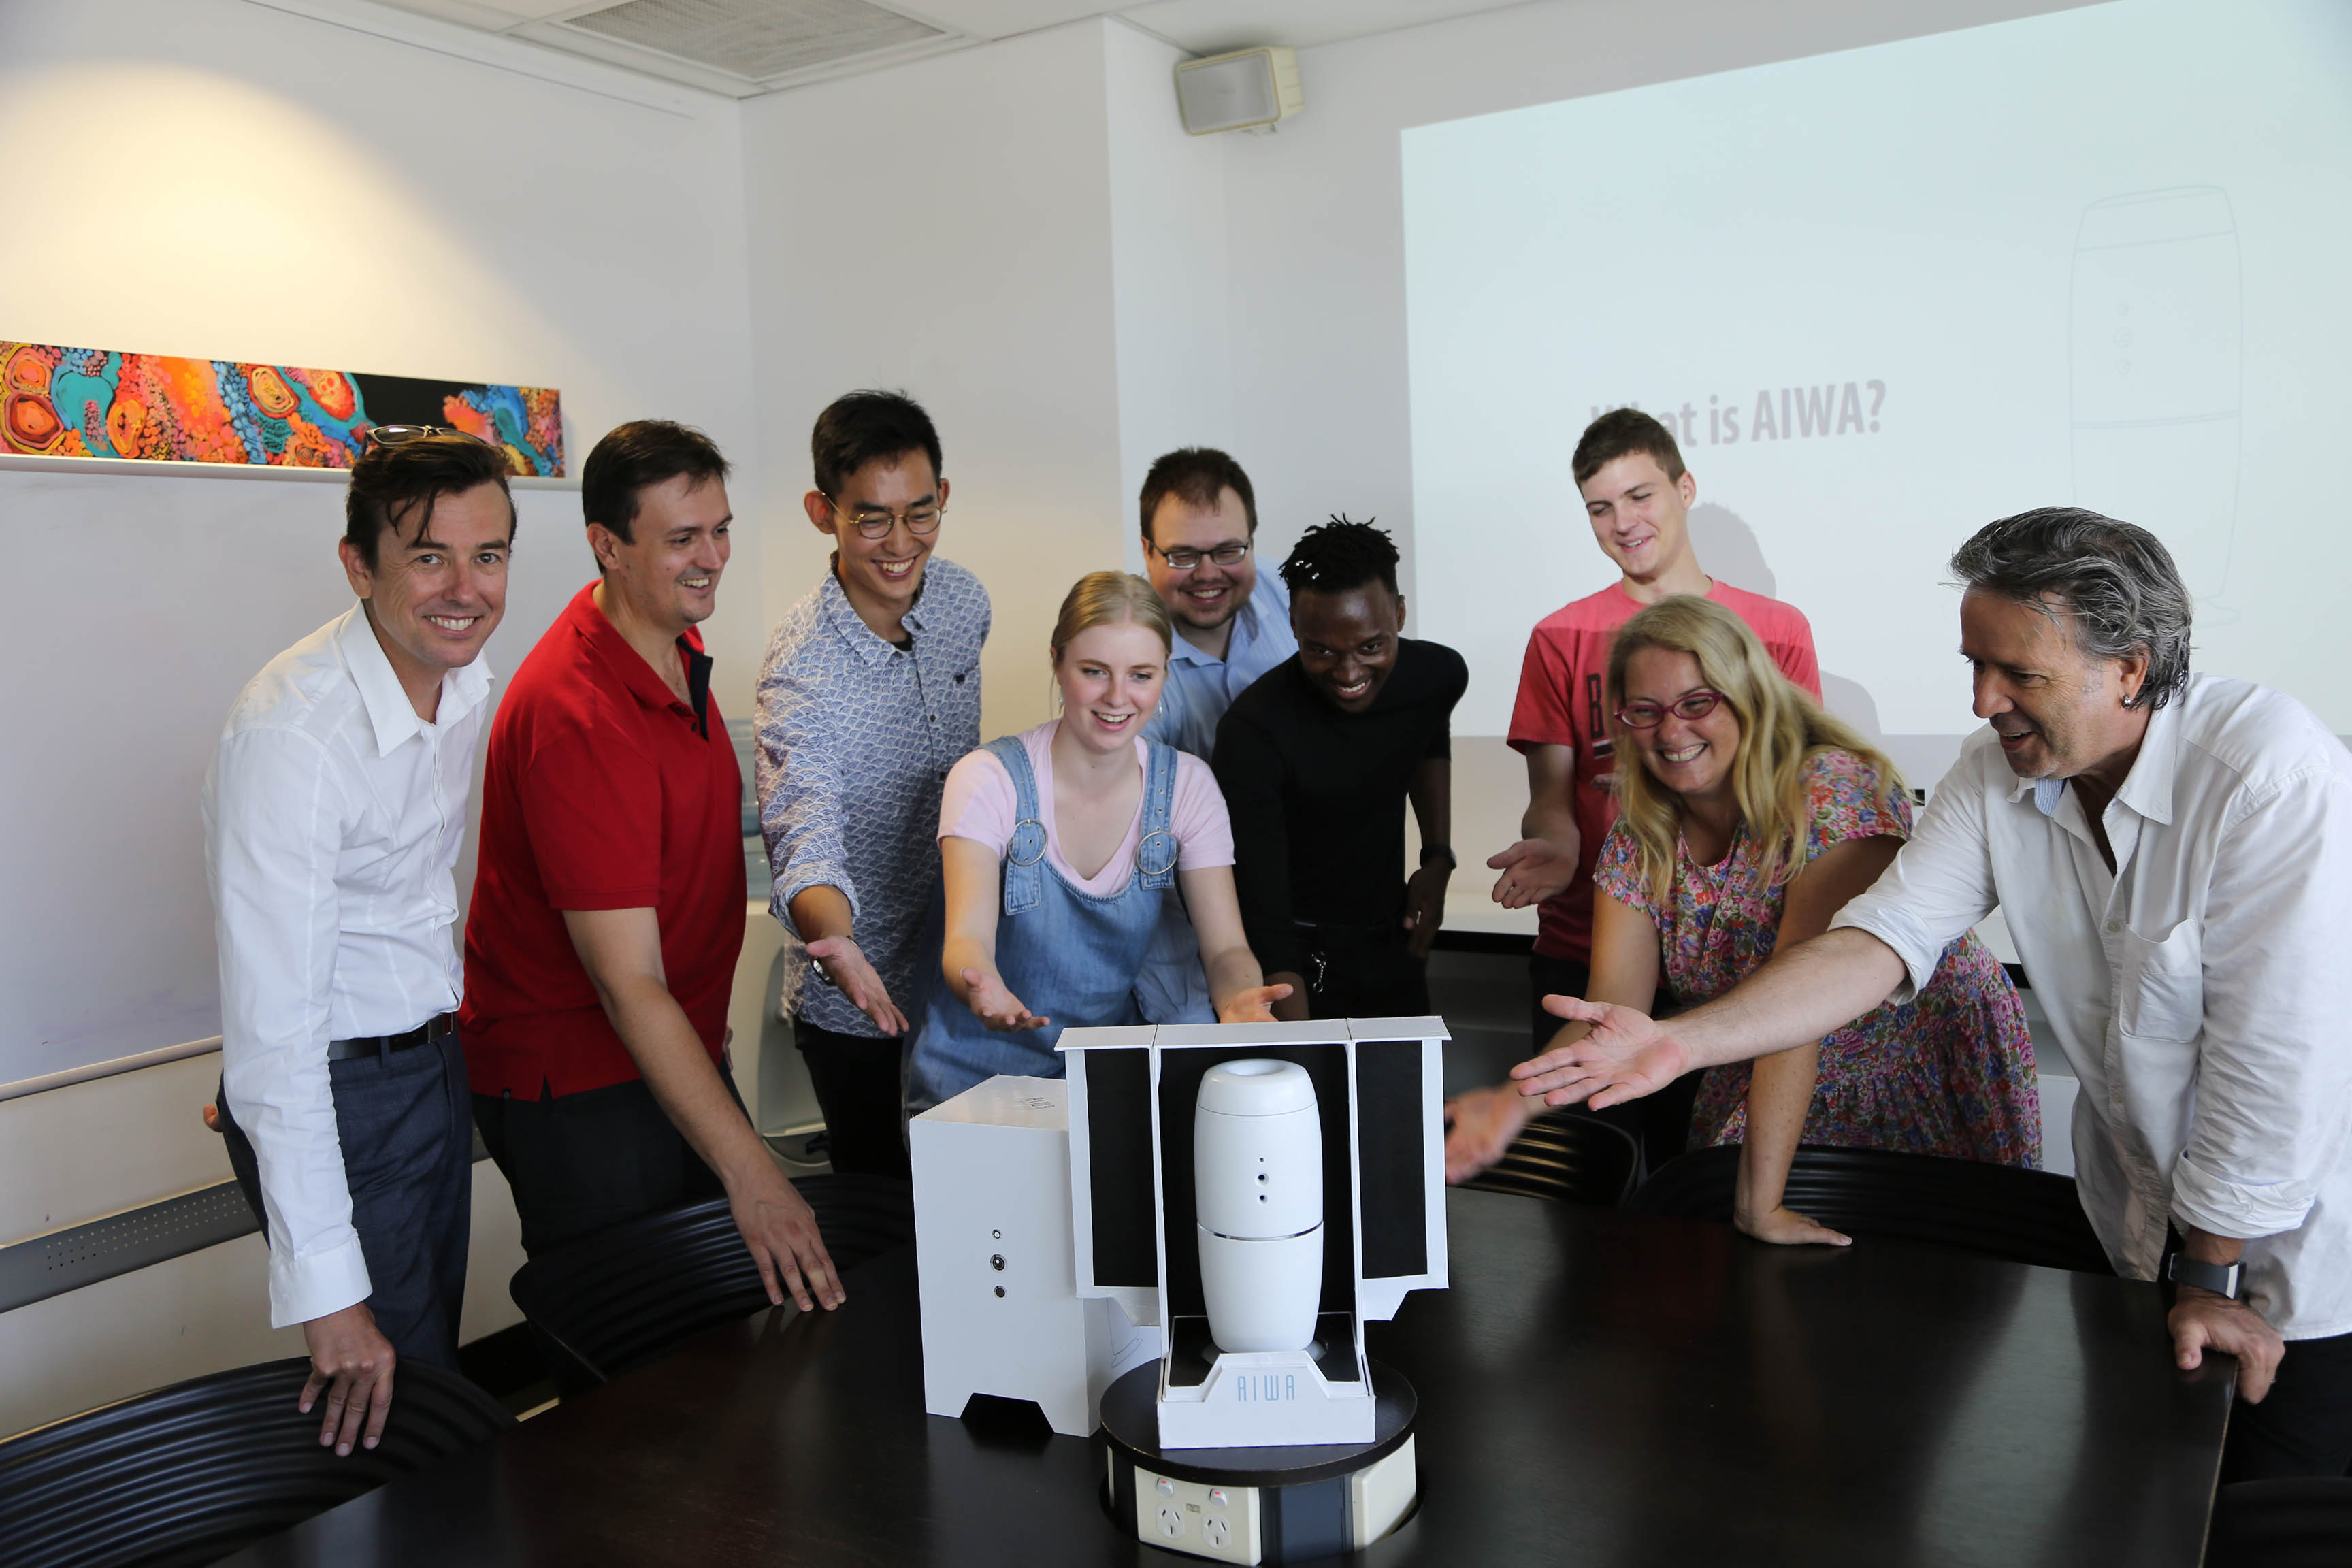 From left, Creative Industries Associate Dean Gavin Sade, Team AIWA, Drama Lecturer Kathryn Kelly and Creative Lab Director Louis-Philippe Demers with the device